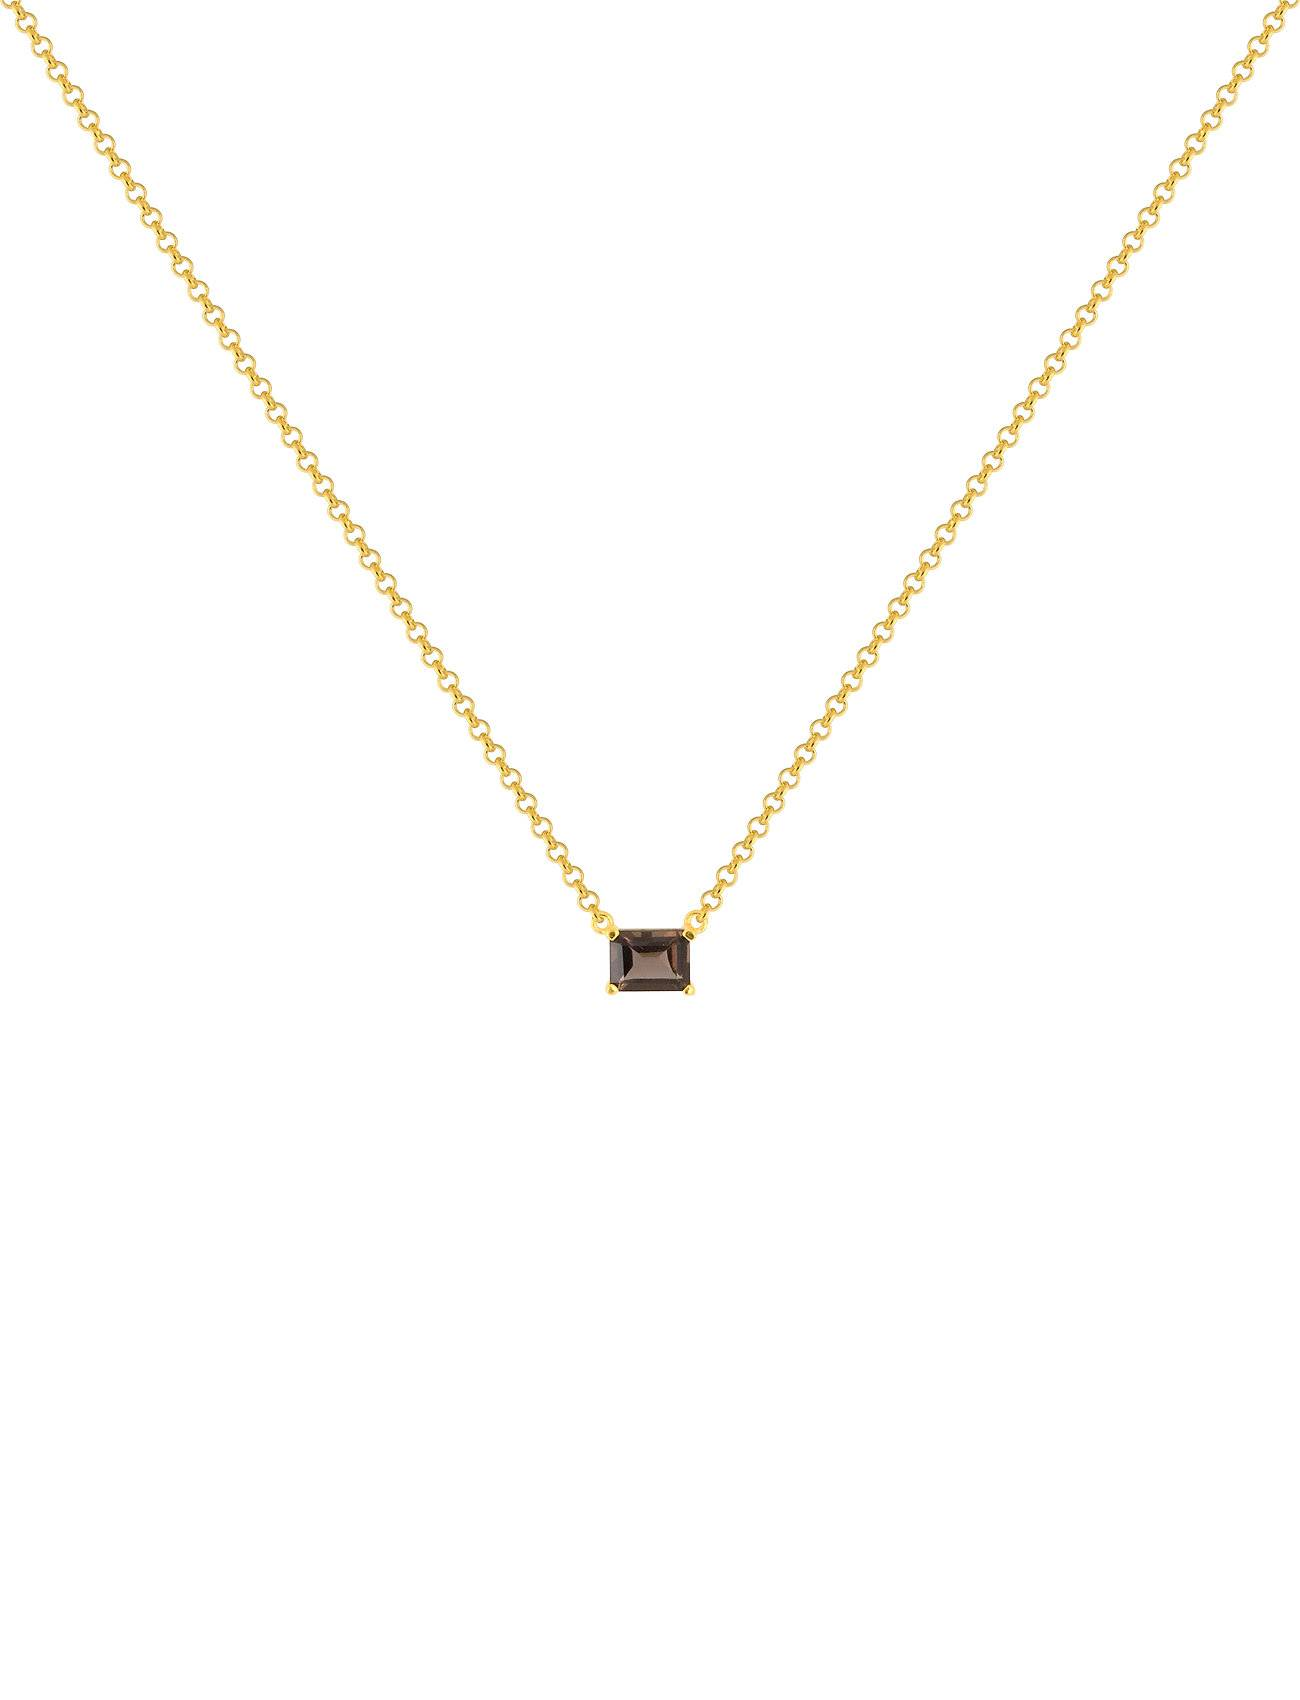 SOPHIE by SOPHIE Emerald-Cut Necklace